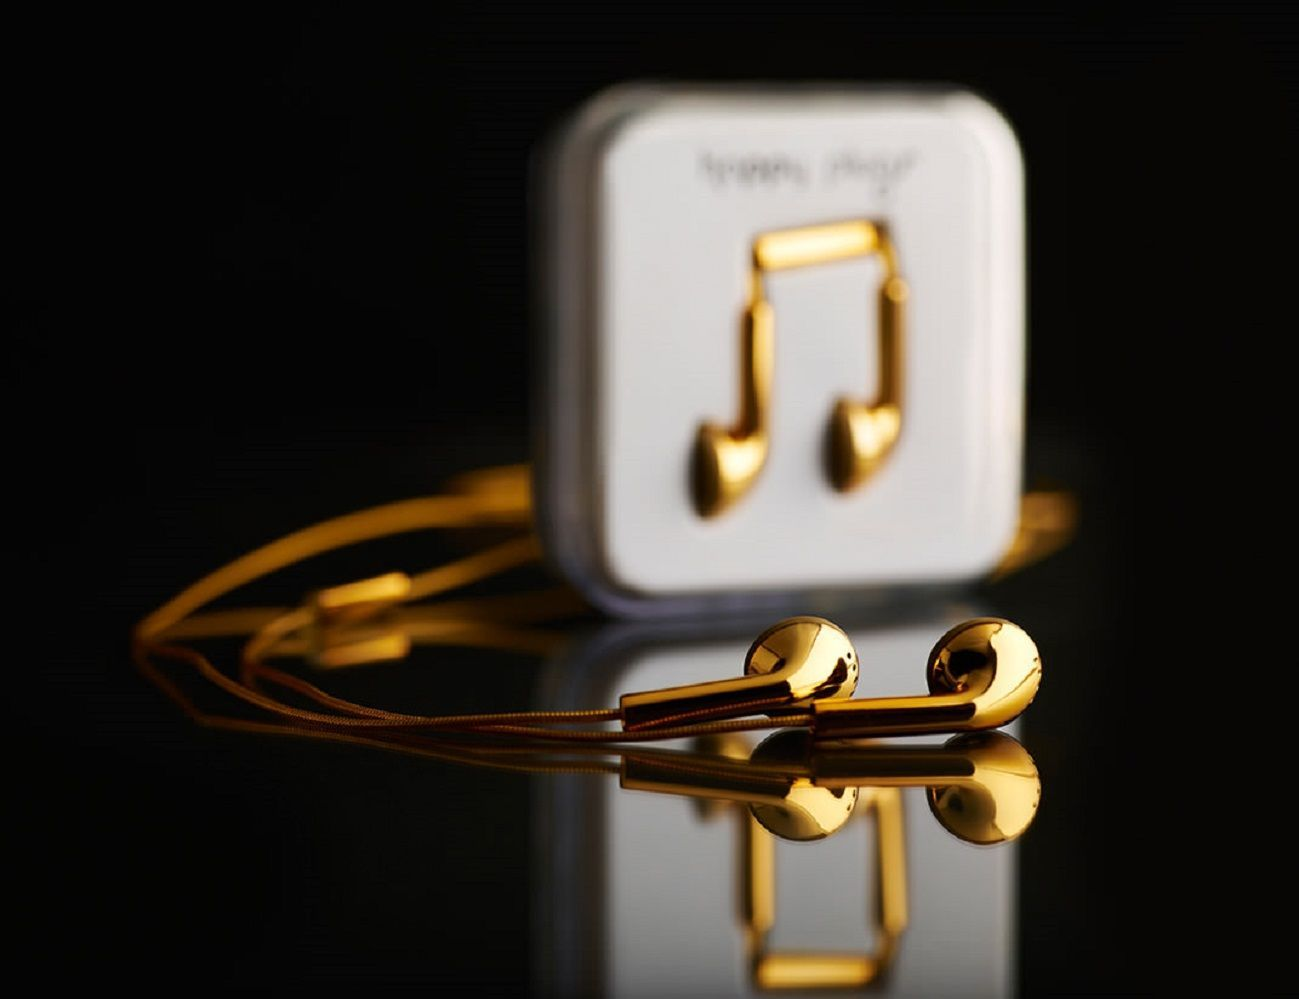 gold iphone headphones happy plugs gold earbuds 187 gadget flow 10715